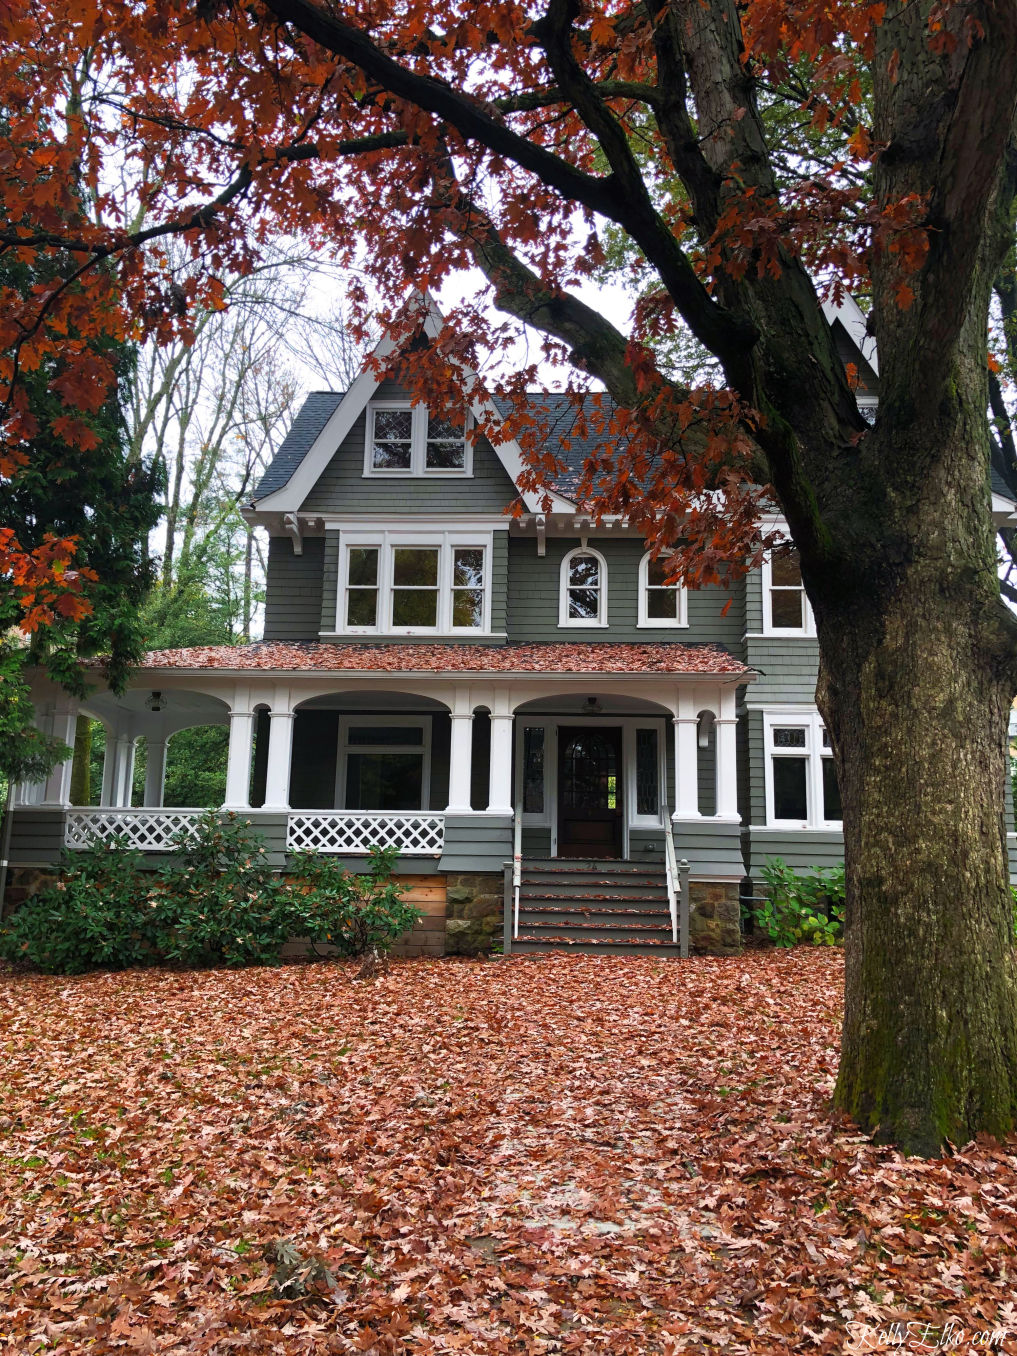 Kelly's Stamp of Approval - love this beautiful old house covered in colorful fall leaves kellyelko.com #fall #fallhome #fallfoliage #oldhouse #oldhome #fallporch #kellyelko